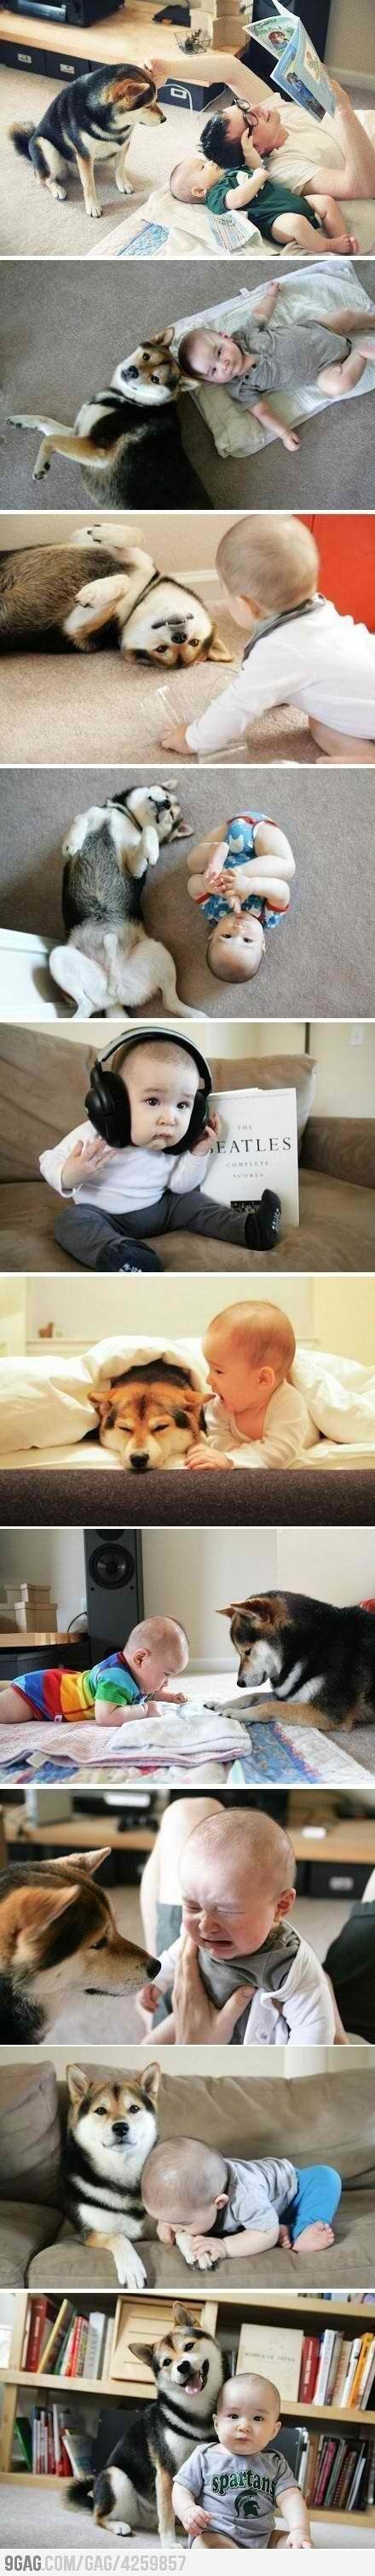 That's the cutest thing ever.